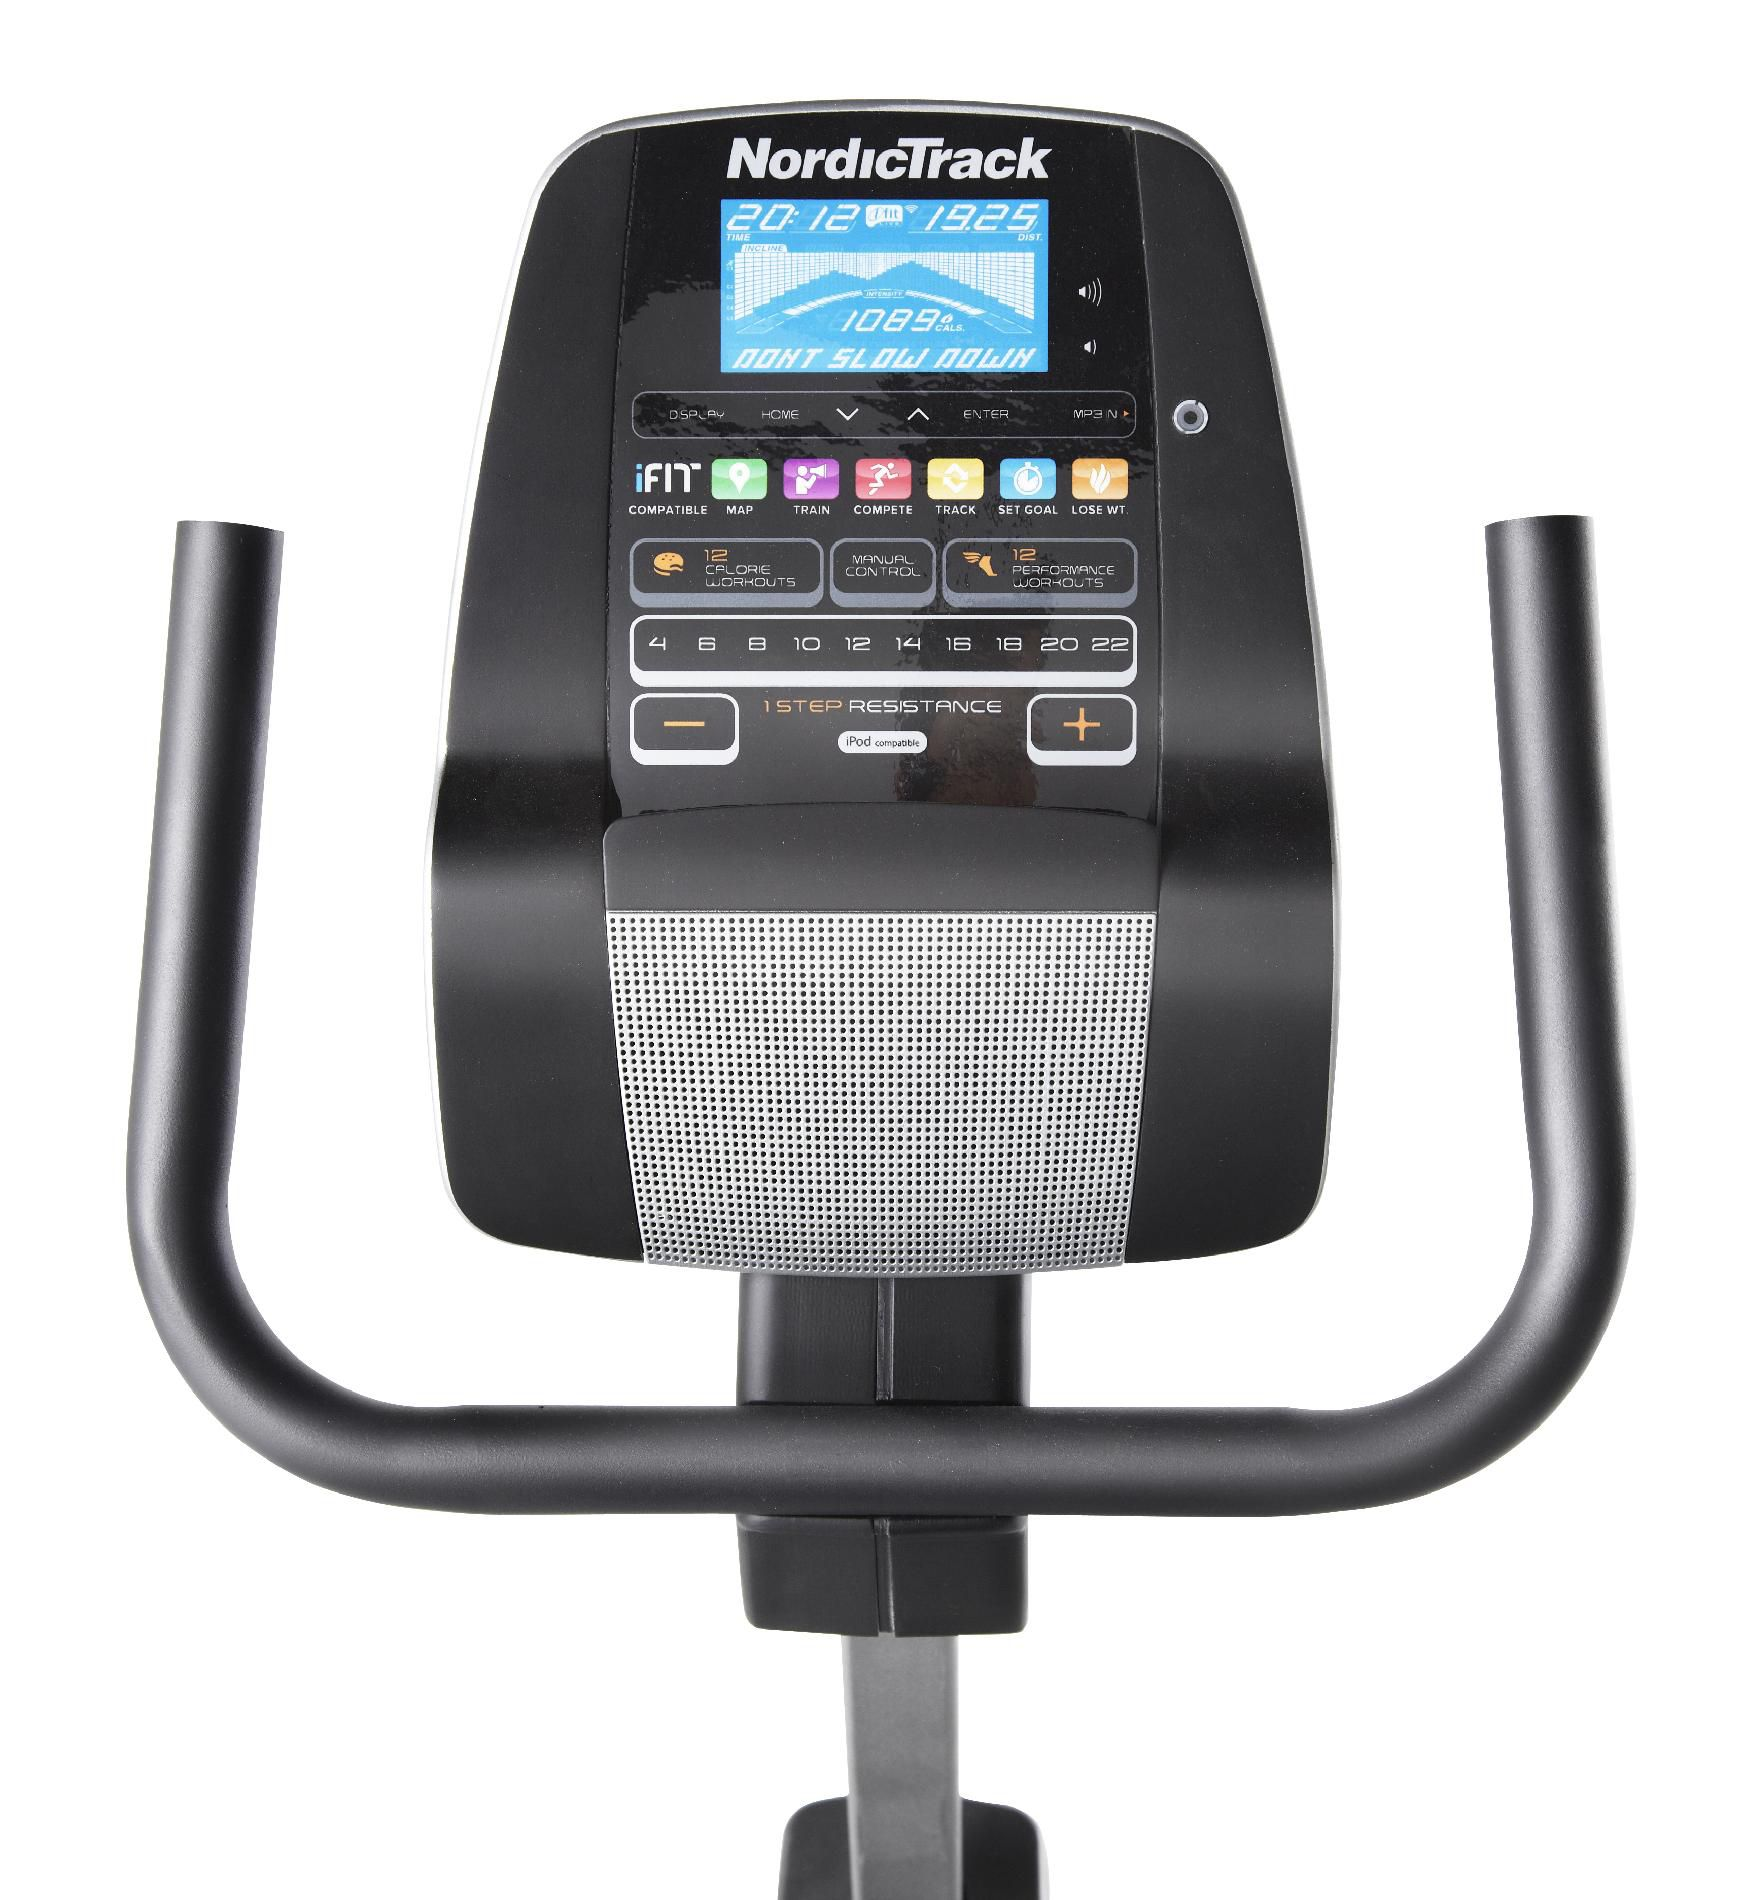 NordicTrack GX 4.5 Exercise Cycle